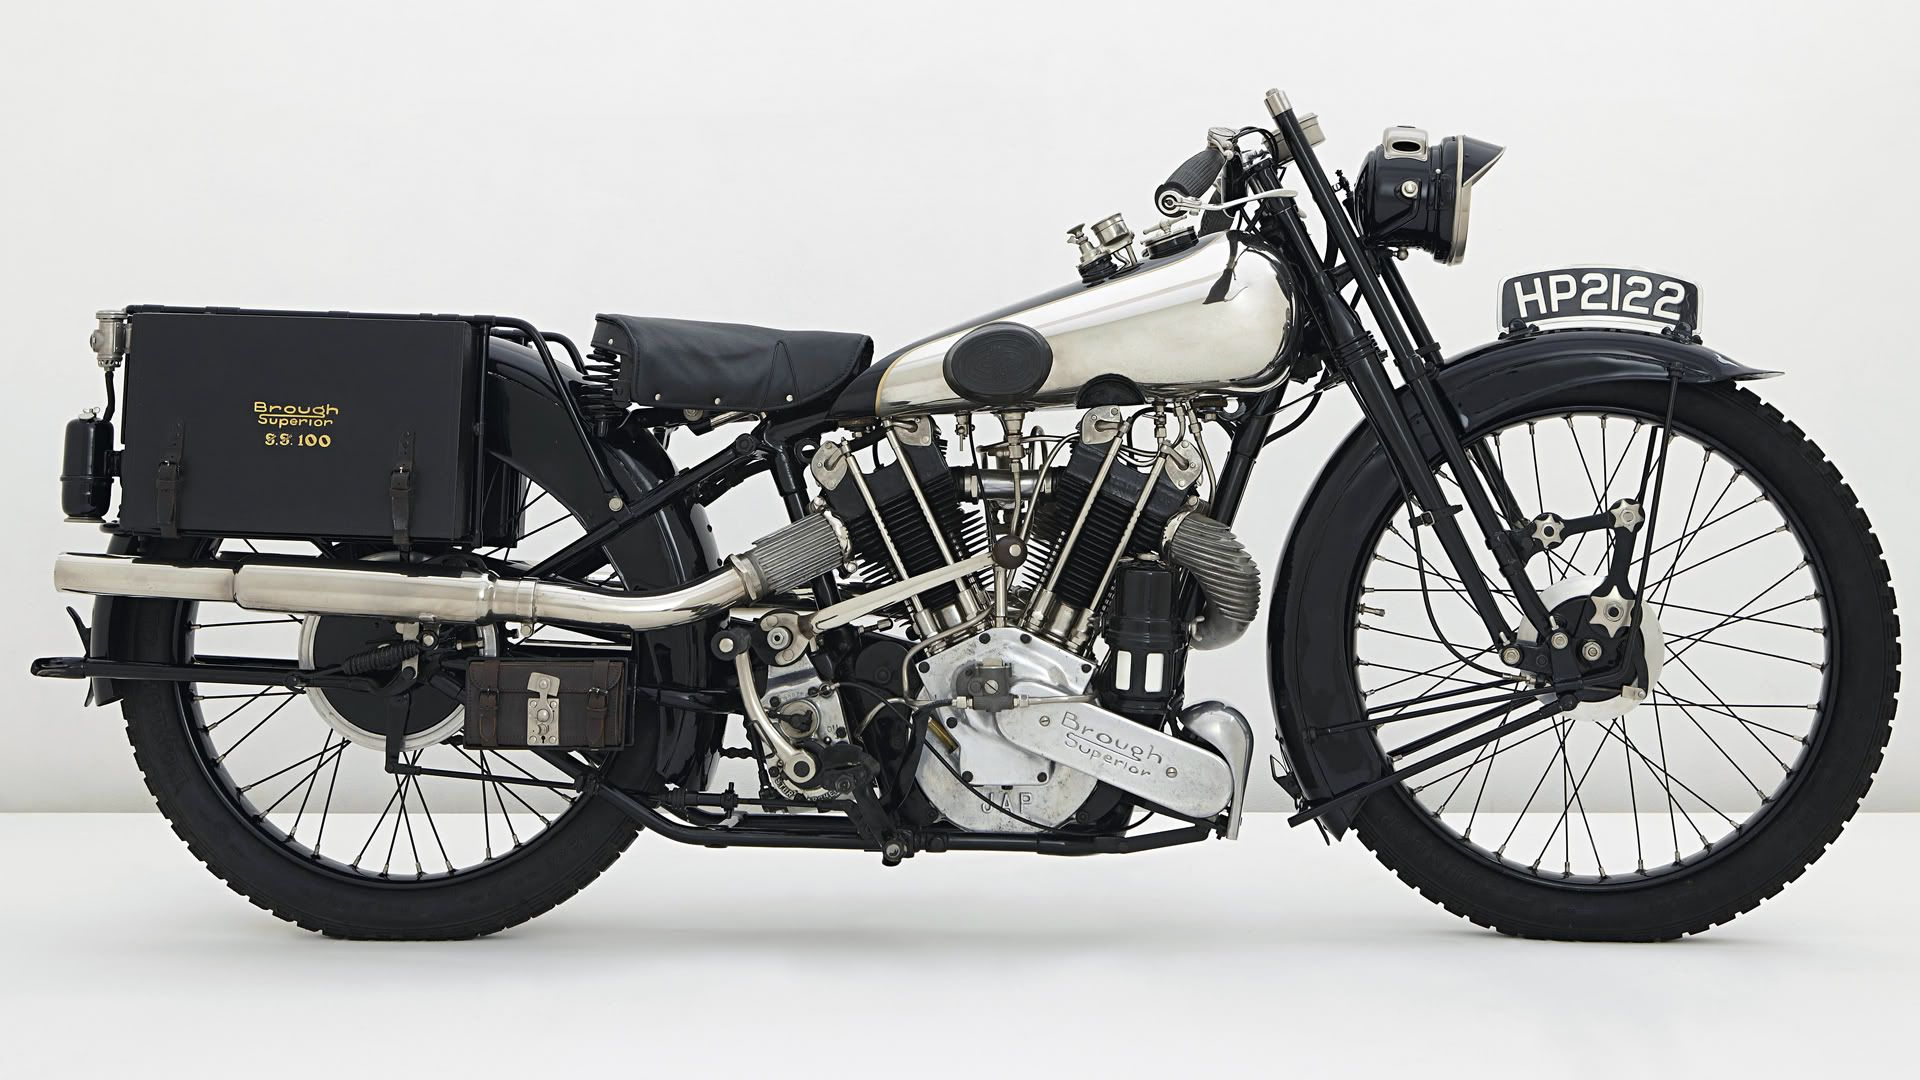 Classic Motorcycle Wallpaper Images Amp Pictures Download Hd